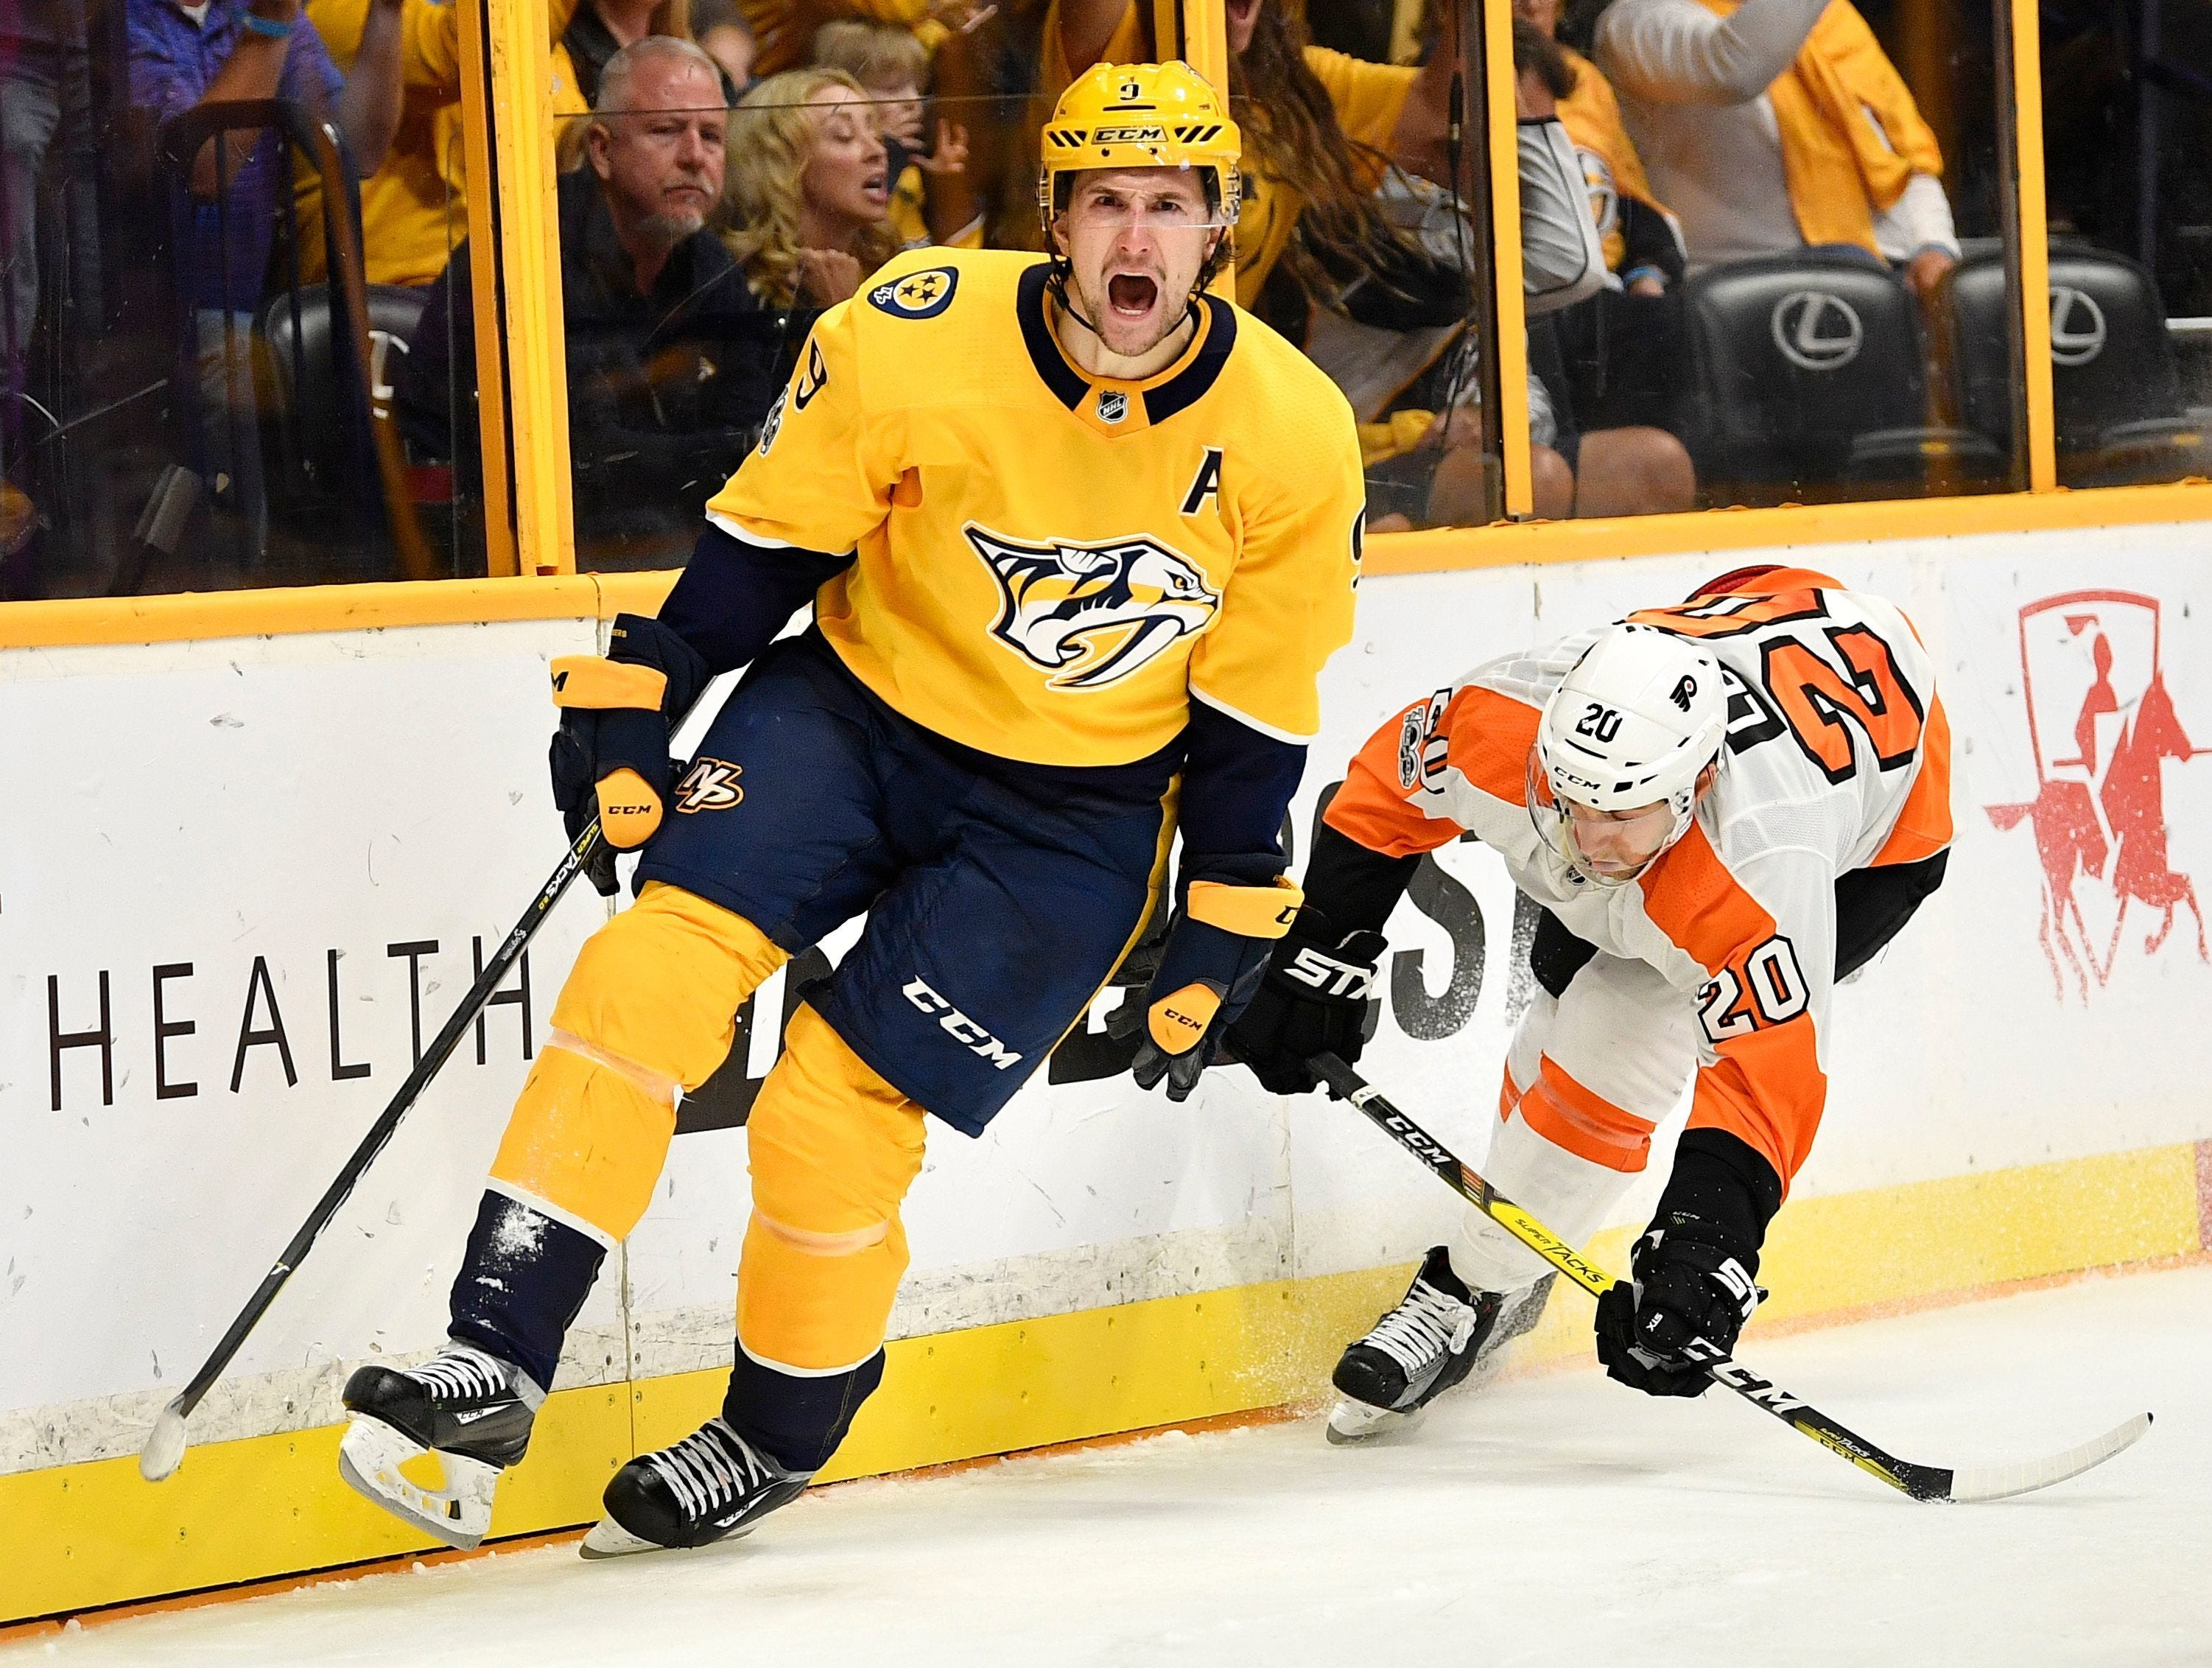 #9, Filip Forsberg, Forward - Nashville Predators left wing Filip Forsberg (9) celebrates his goal during the third period of the home opener at Bridgestone Arena in Nashville, Tenn., Tuesday, Oct. 10, 2017.